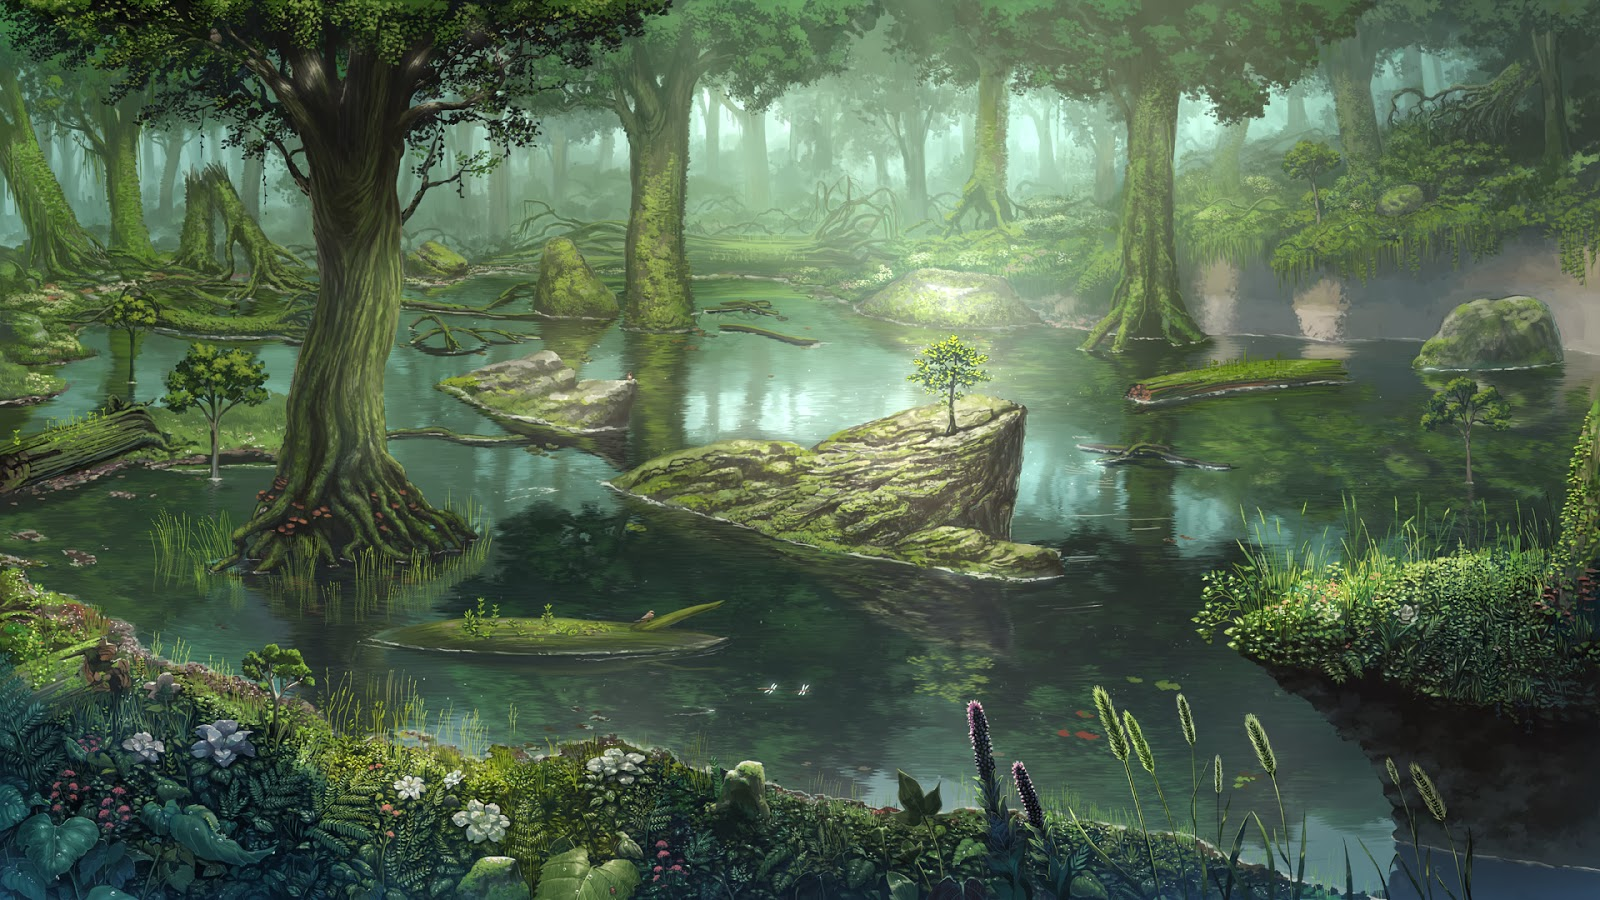 Fantasy Wallpapers: Fantasy forest landscape (Wallpaper) Heartbreak Images For Facebook